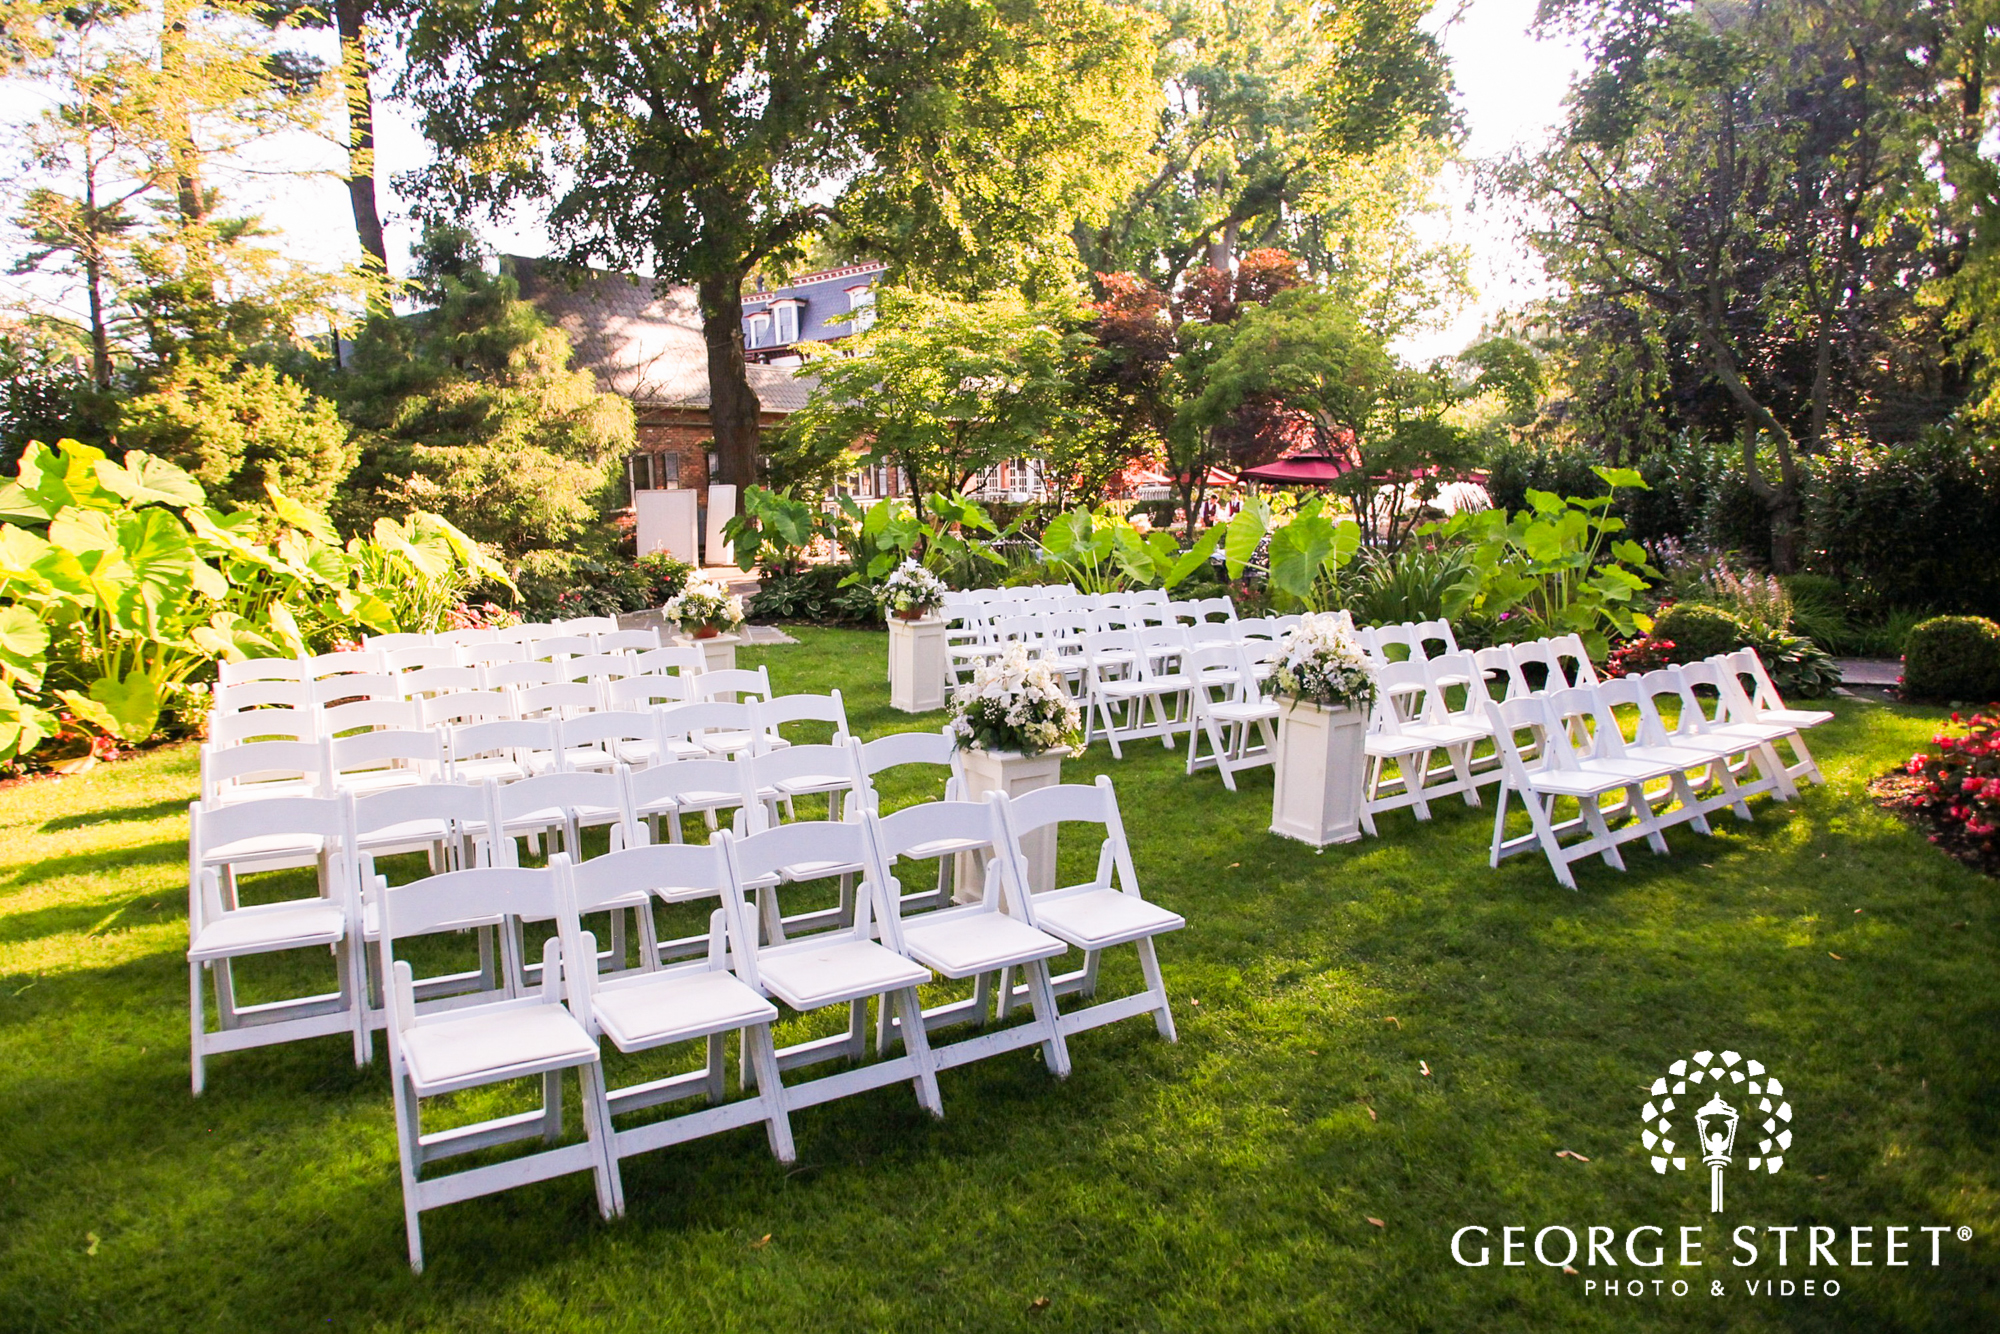 Indoor Classic Wedding Ceremony At Westbury Manor In: George Street Photo & Video